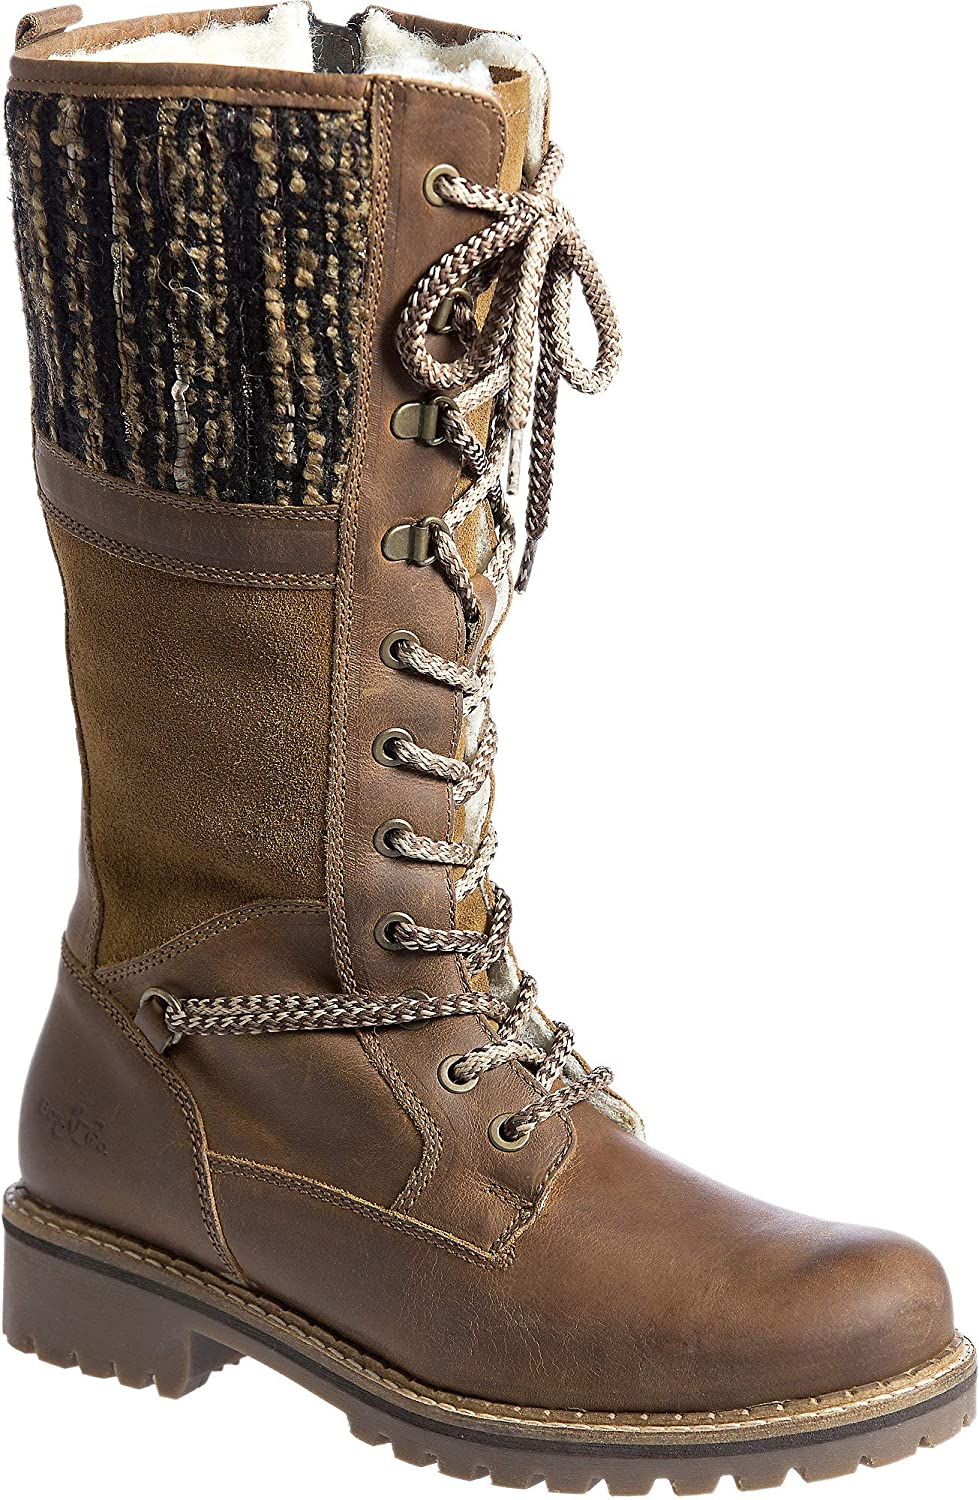 ce771102b9c Women's Bos & Co Holland Wool-Lined Waterproof Leather Boots